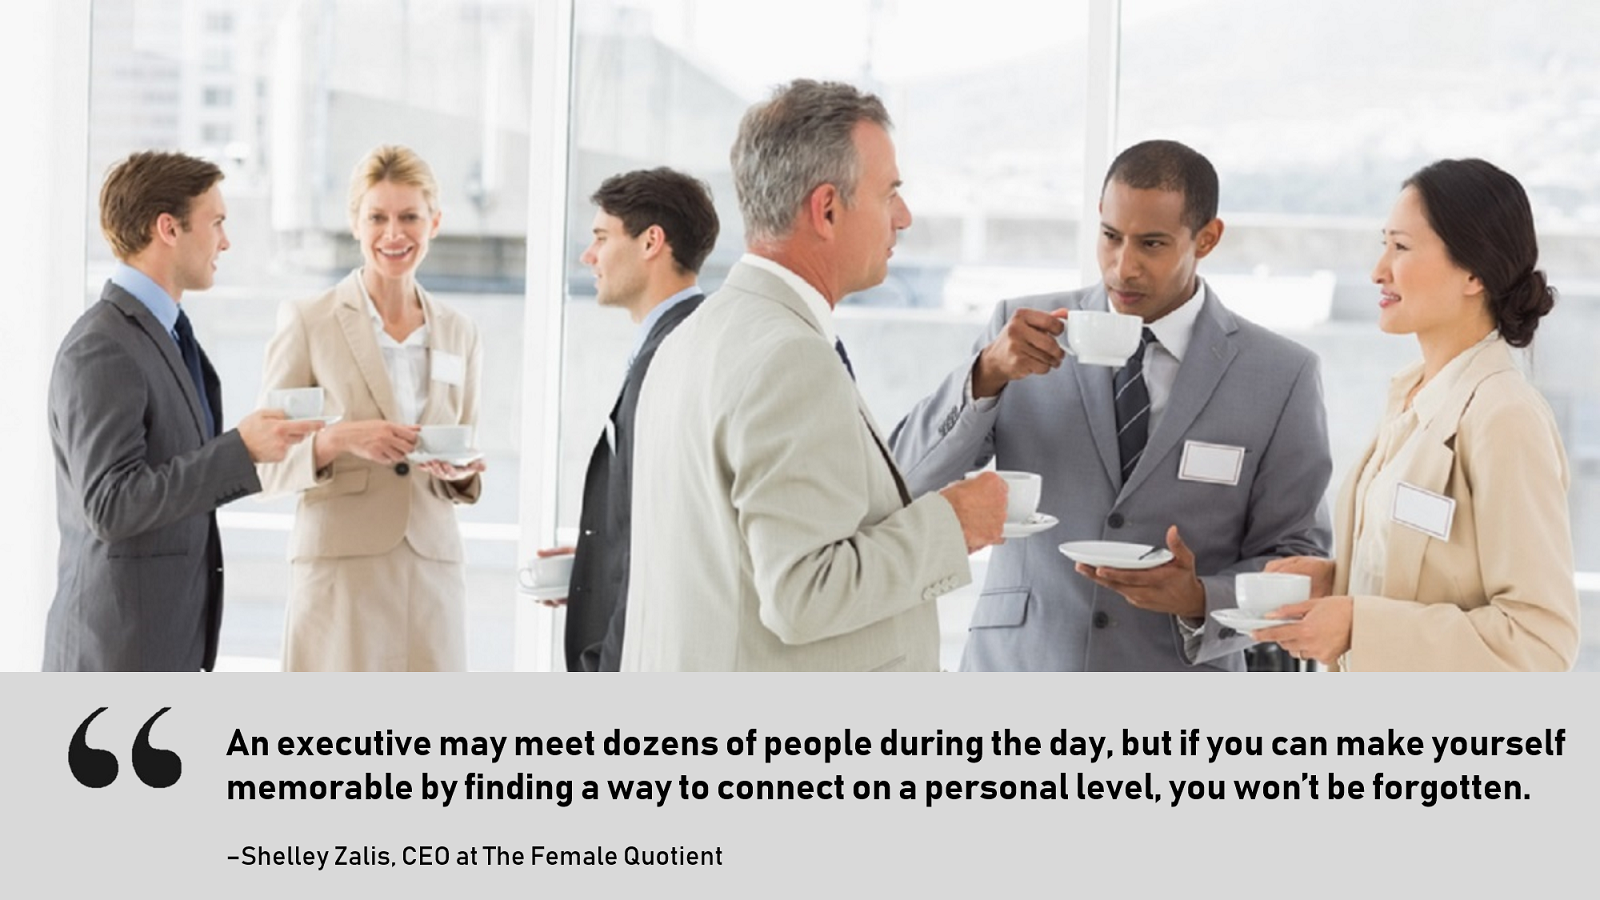 Make yourself memorable by finding a way to connect on a personal level.